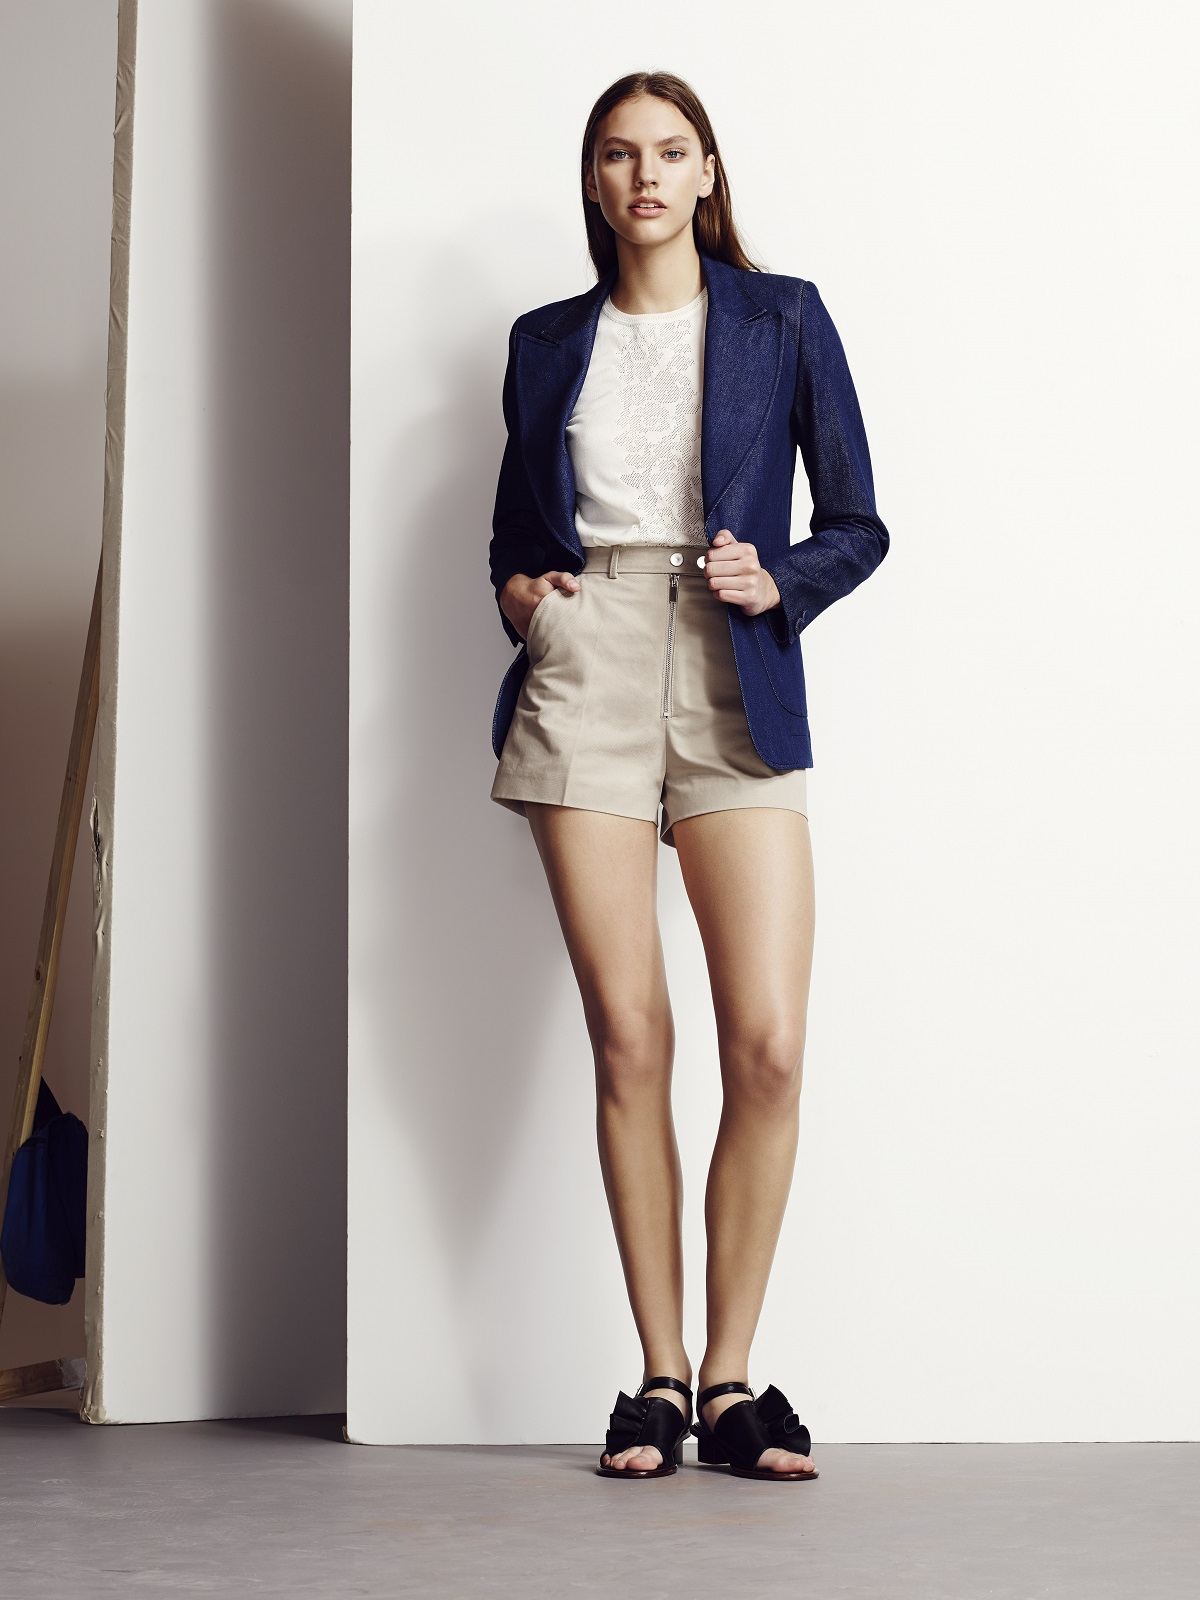 Campaign Shot - Topshop Unique Pre-Fall (13)